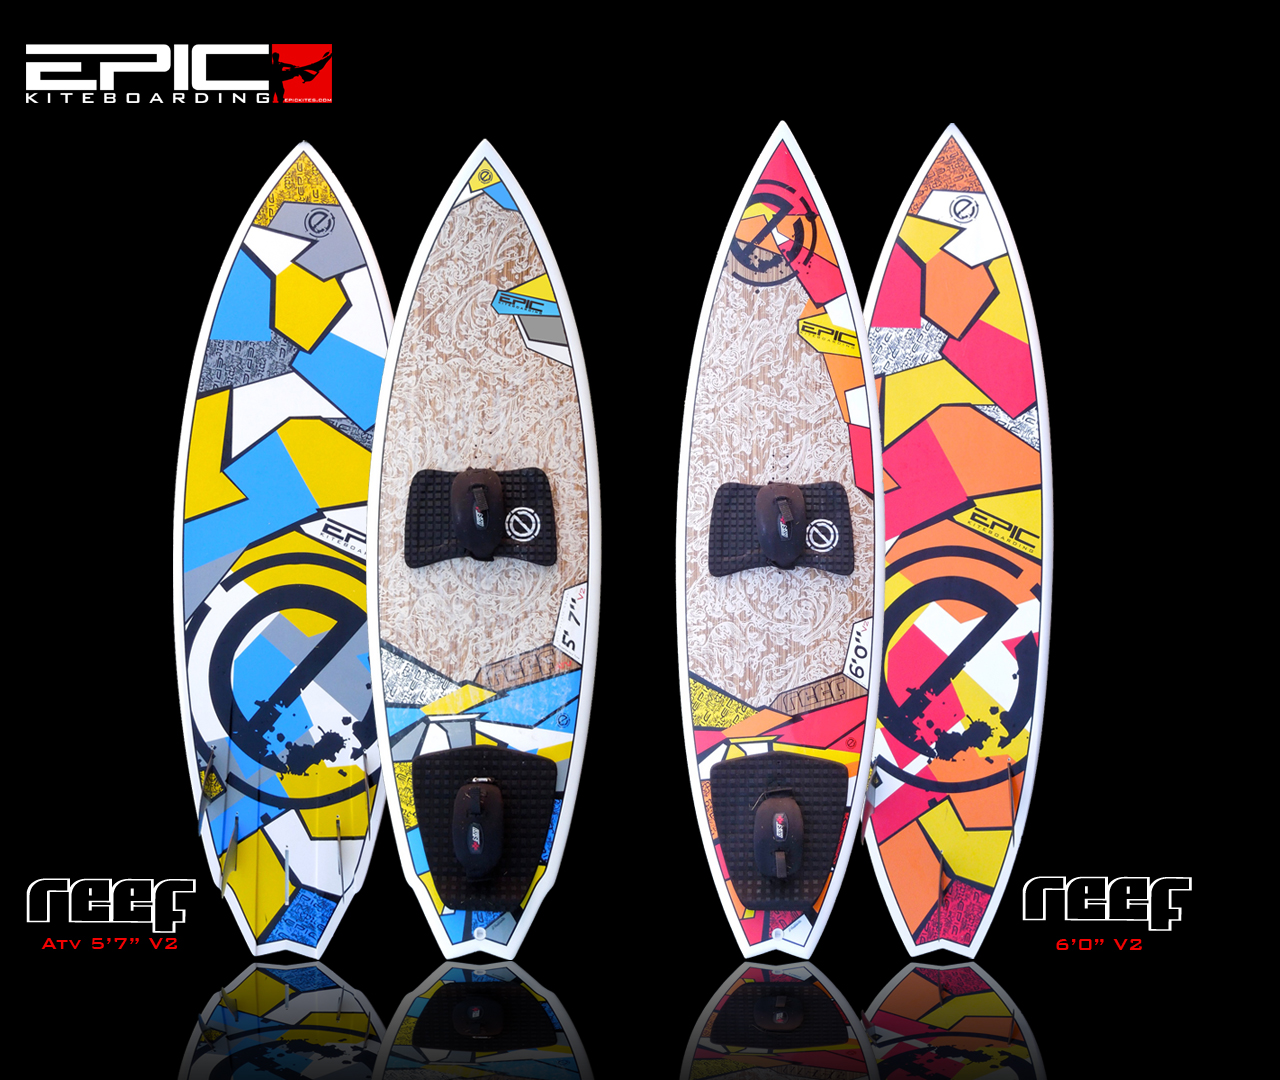 REEF V2 surf boards.jpg